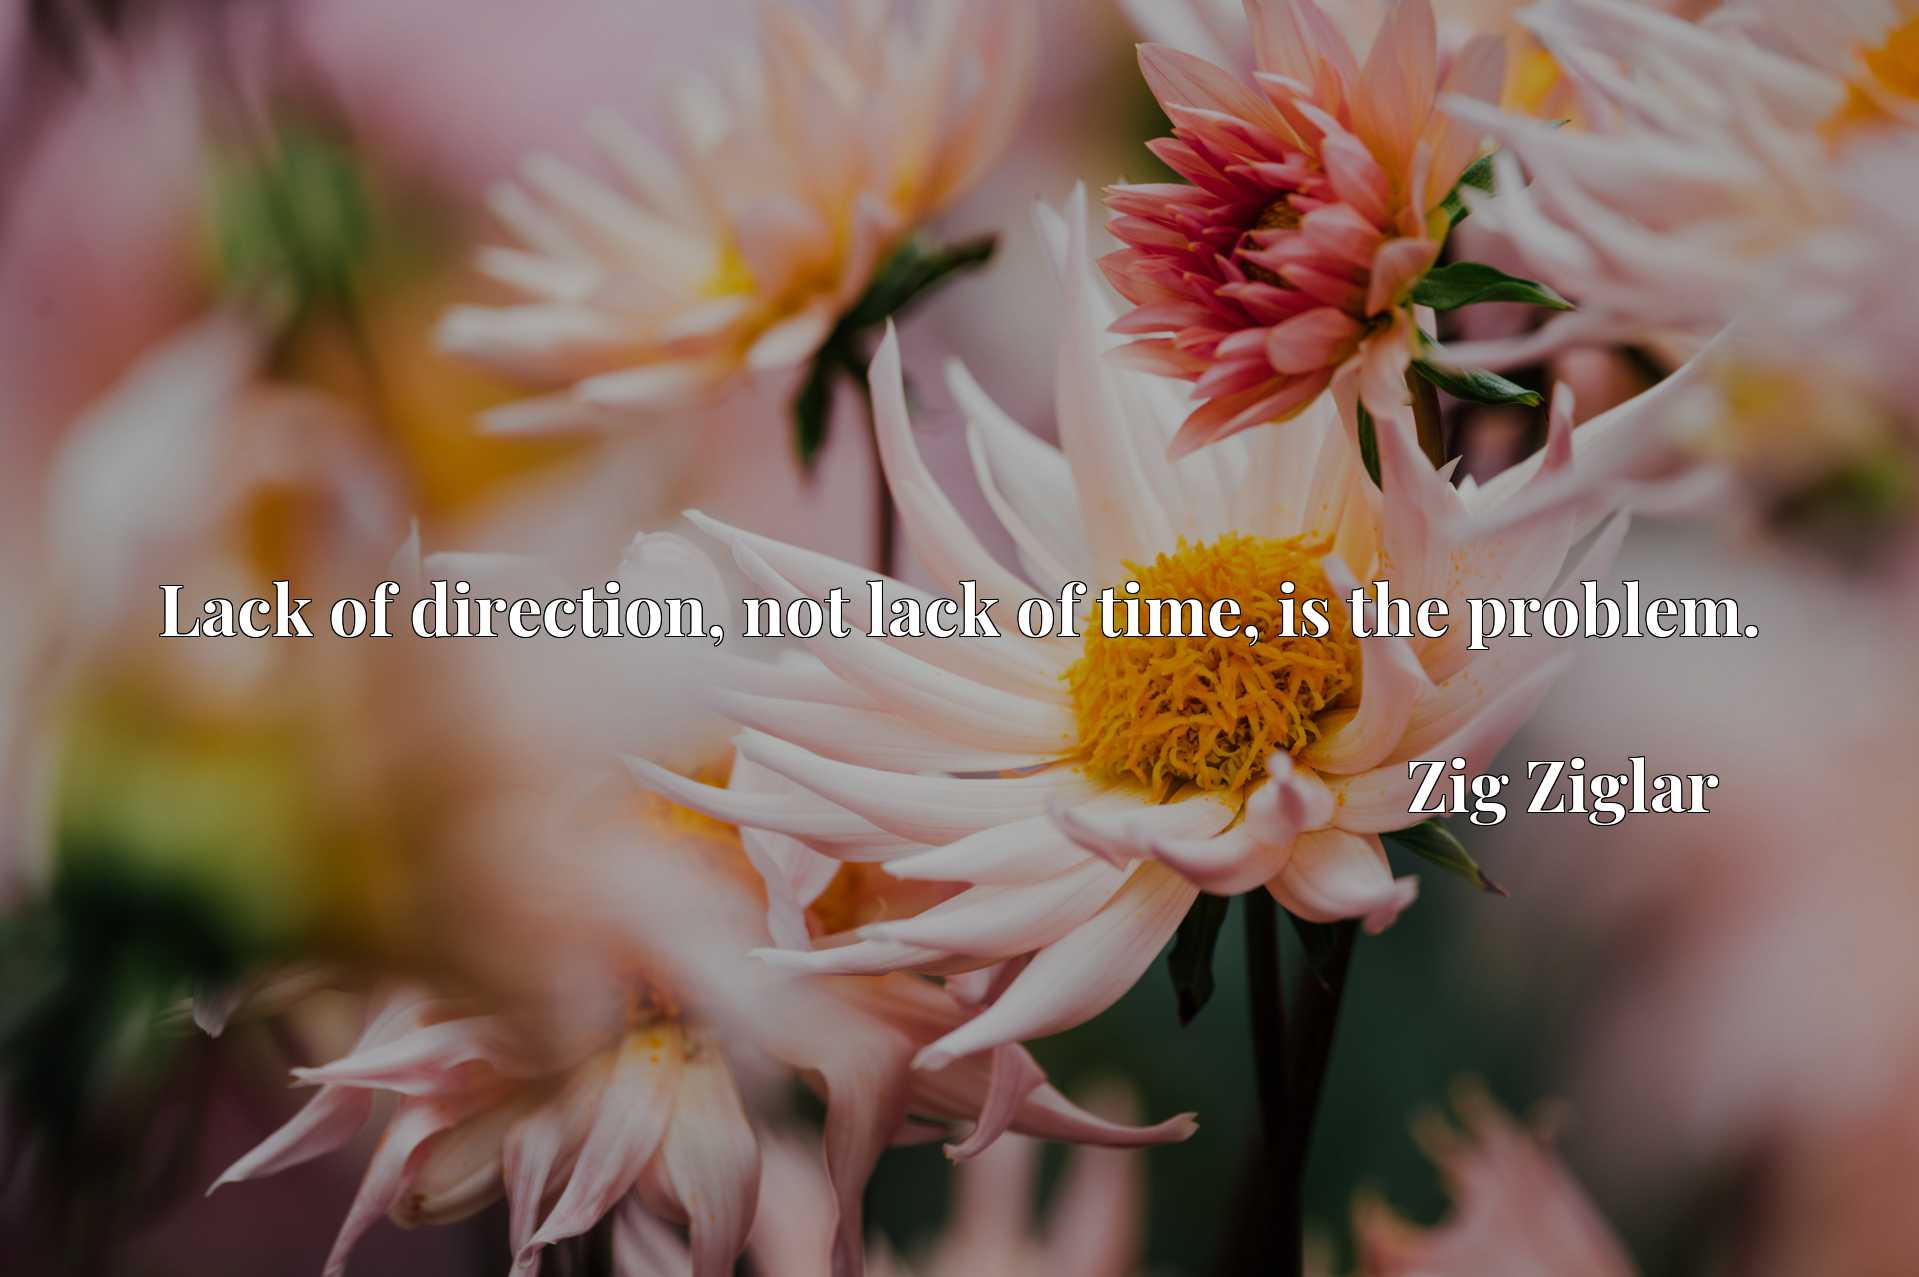 Lack of direction, not lack of time, is the problem.